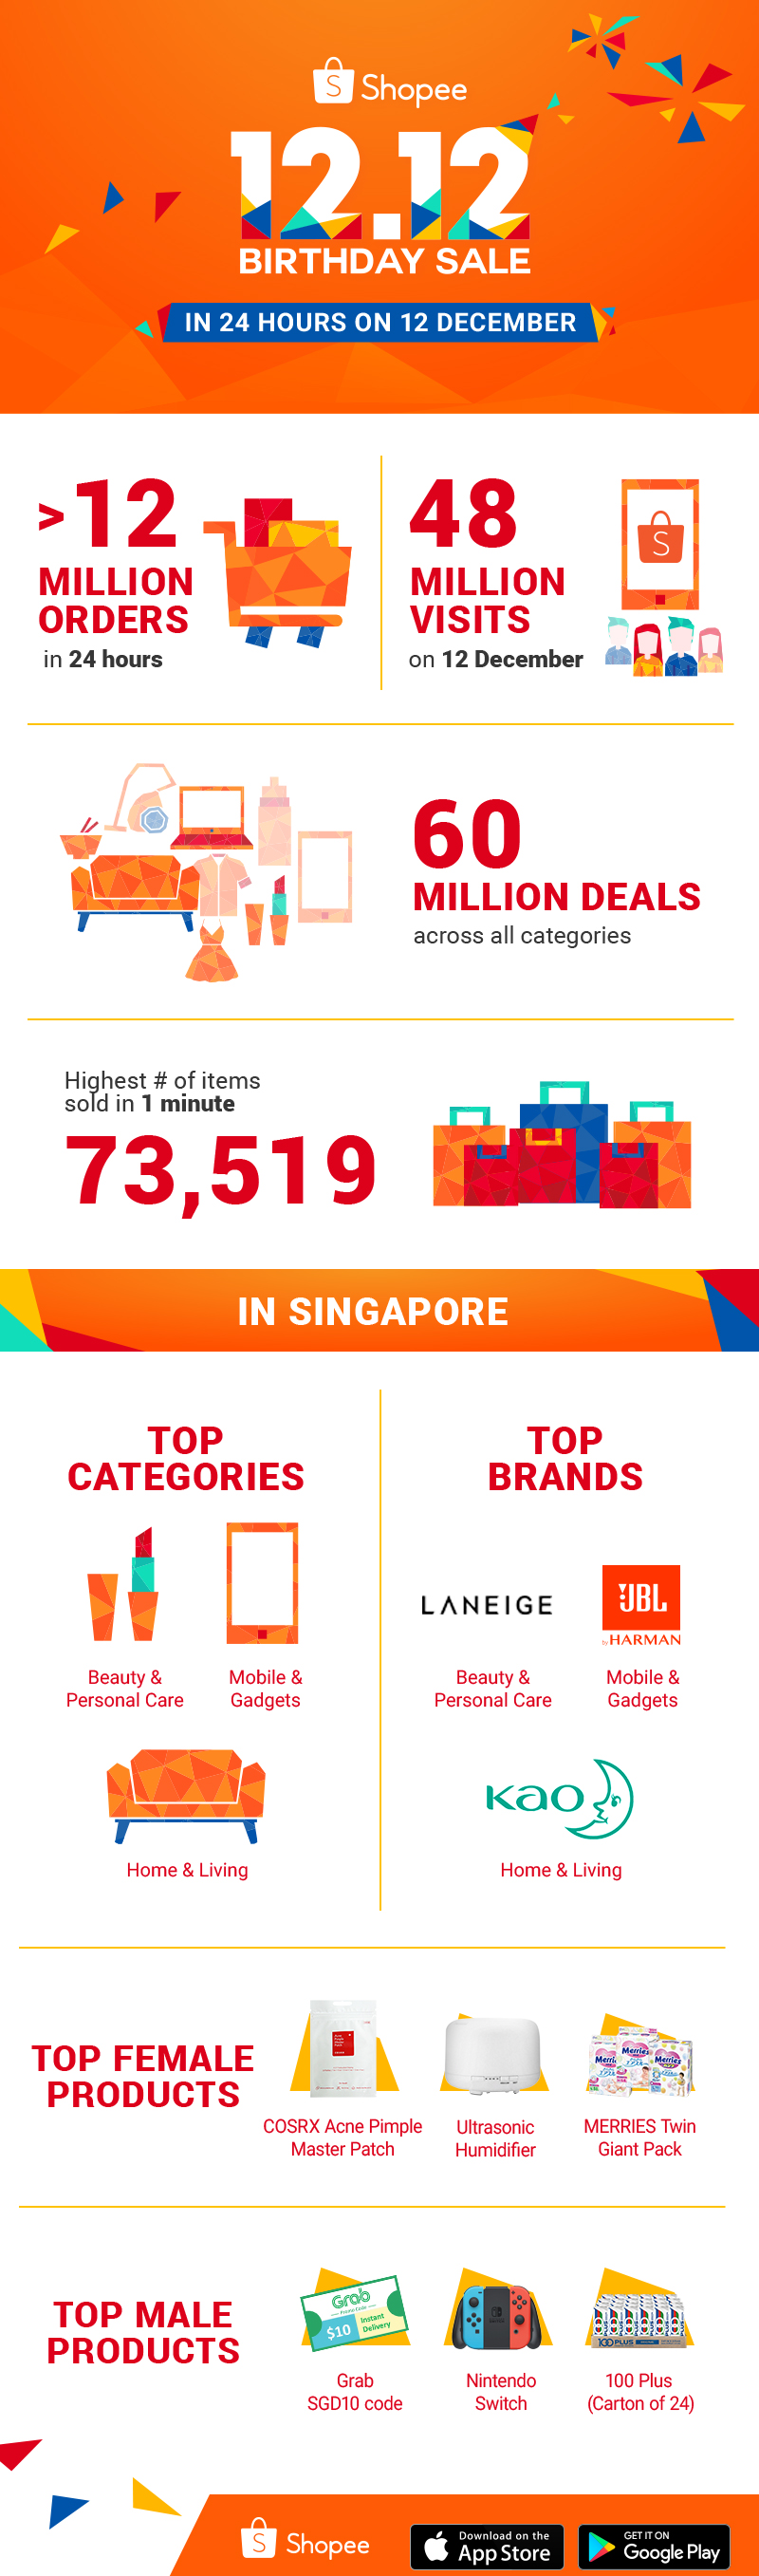 Shopee wraps up a record-breaking 2018 with 12.12 Birthday Sale - Alvinology